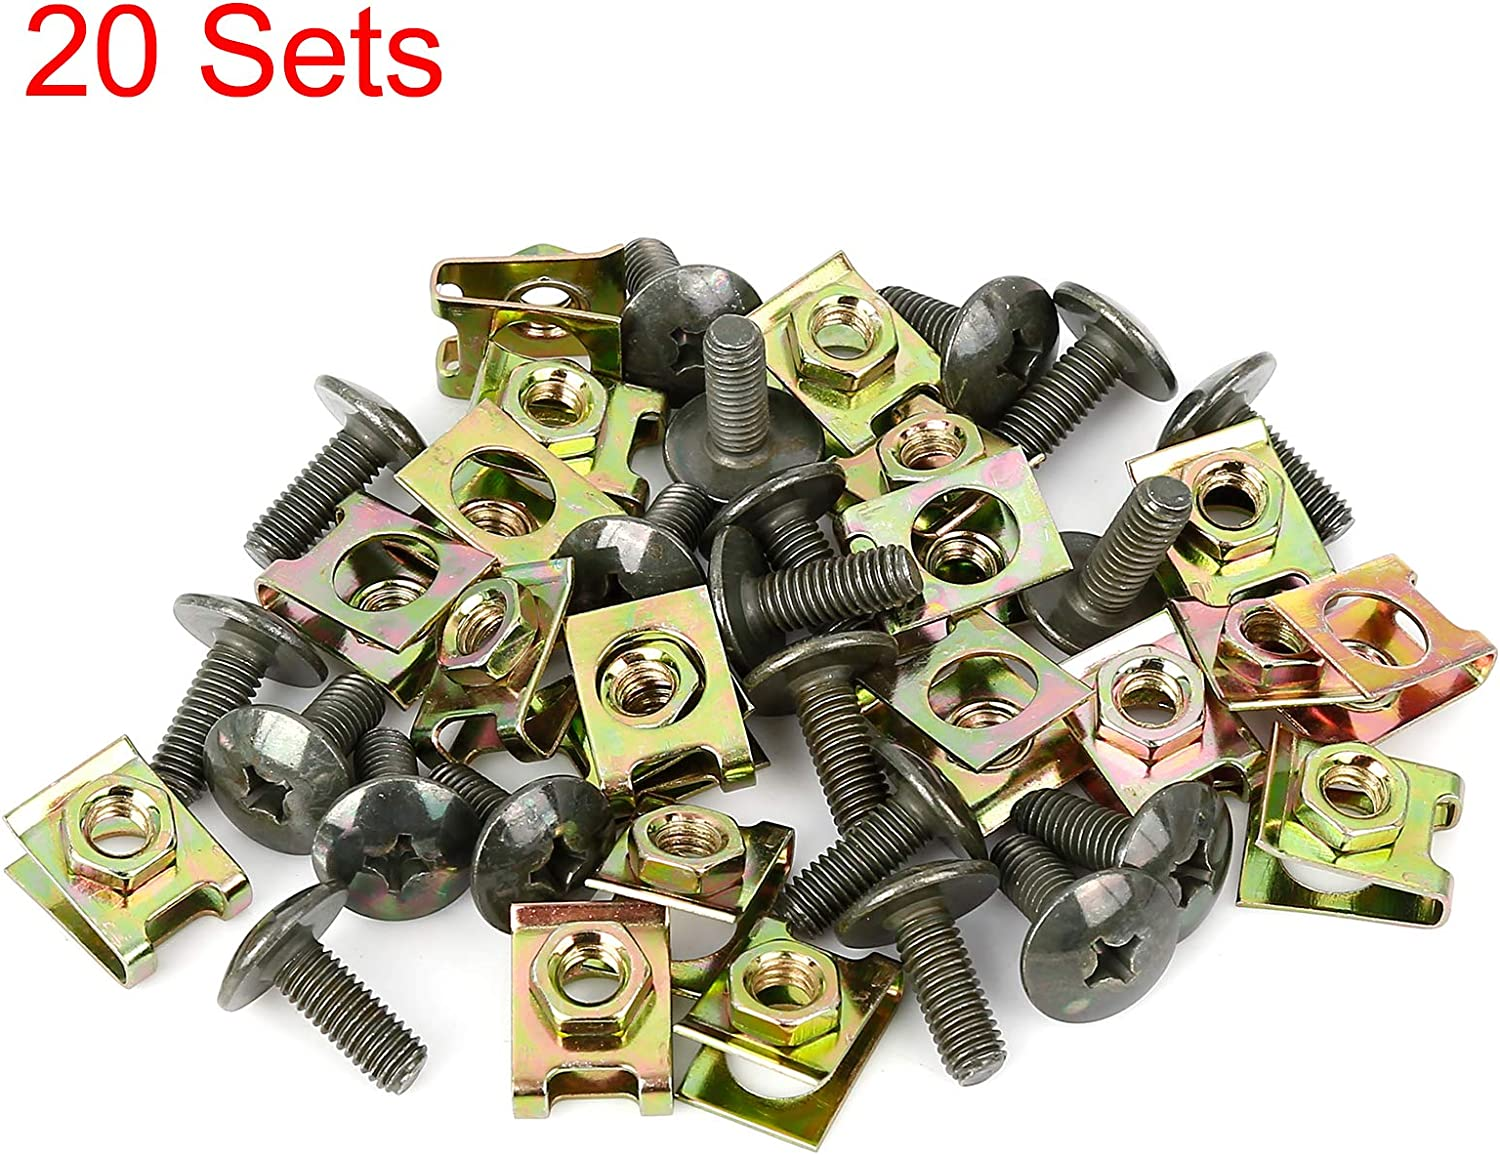 X AUTOHAUX 20 Sets 6x16mm U Clip Phillips Screw Assortment Kit Car Clips Fasteners with Screws for Bumper Dash Door Panel Interior Army Green Gold Tone